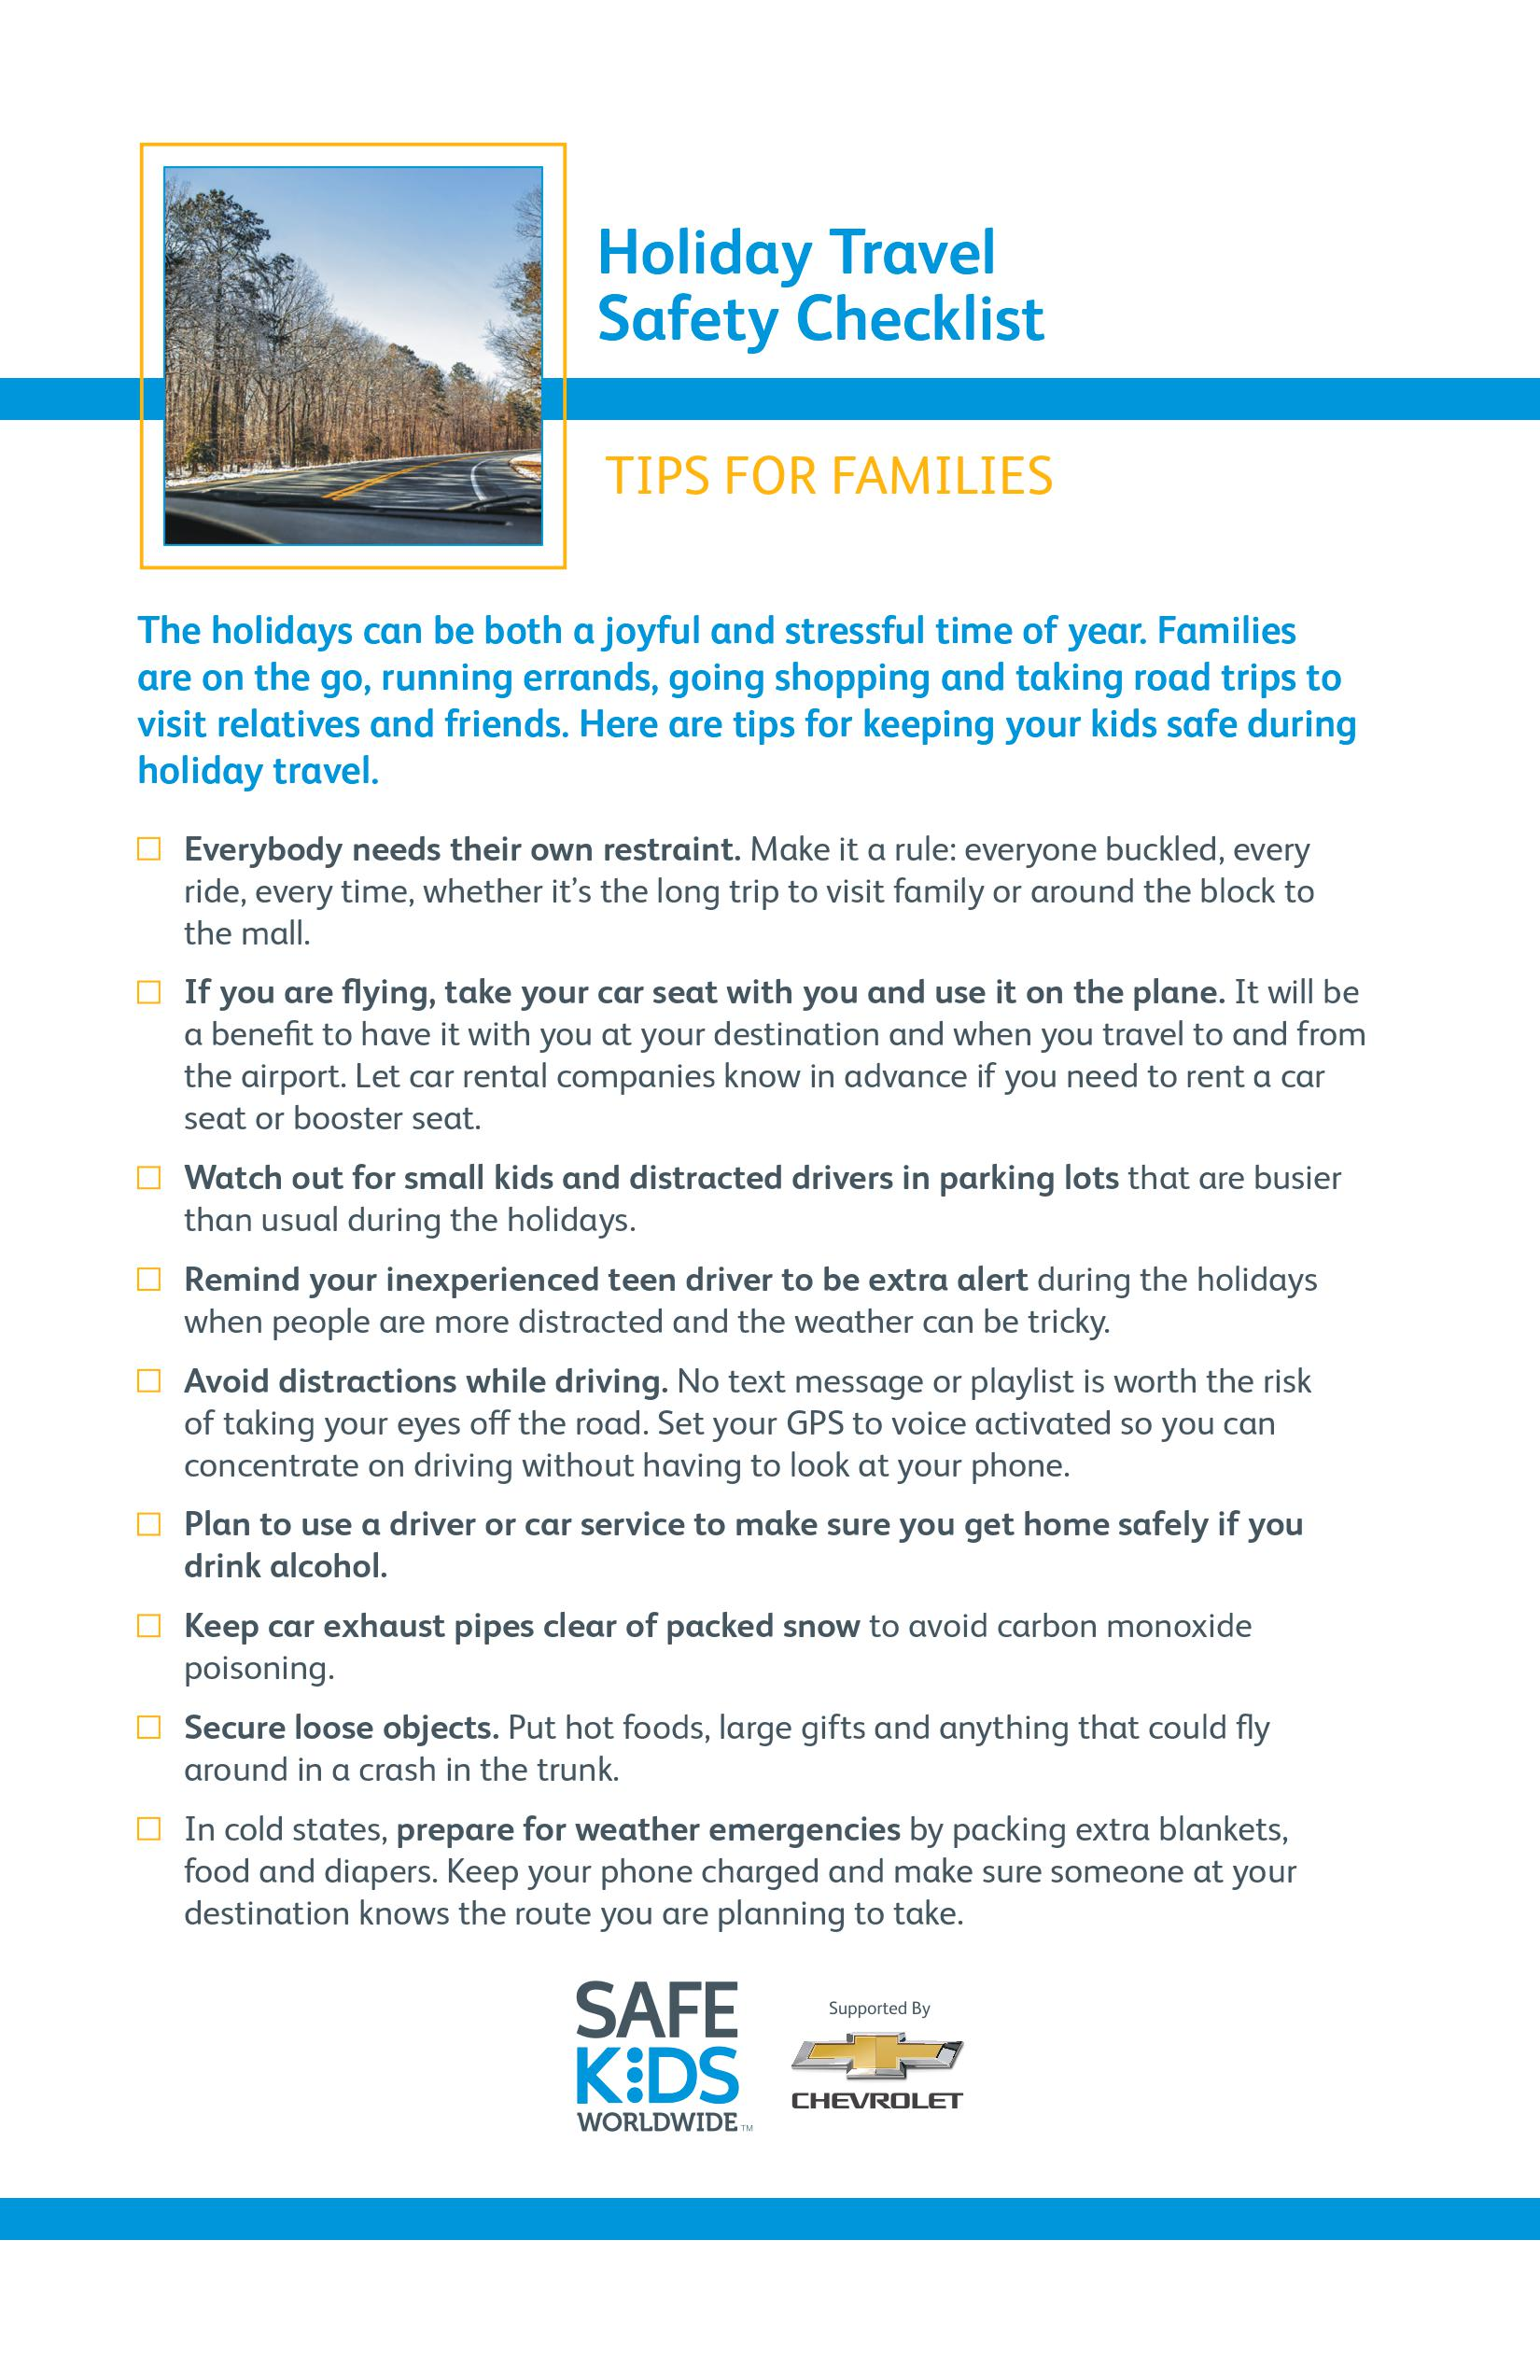 Holiday Travel Safety Checklist